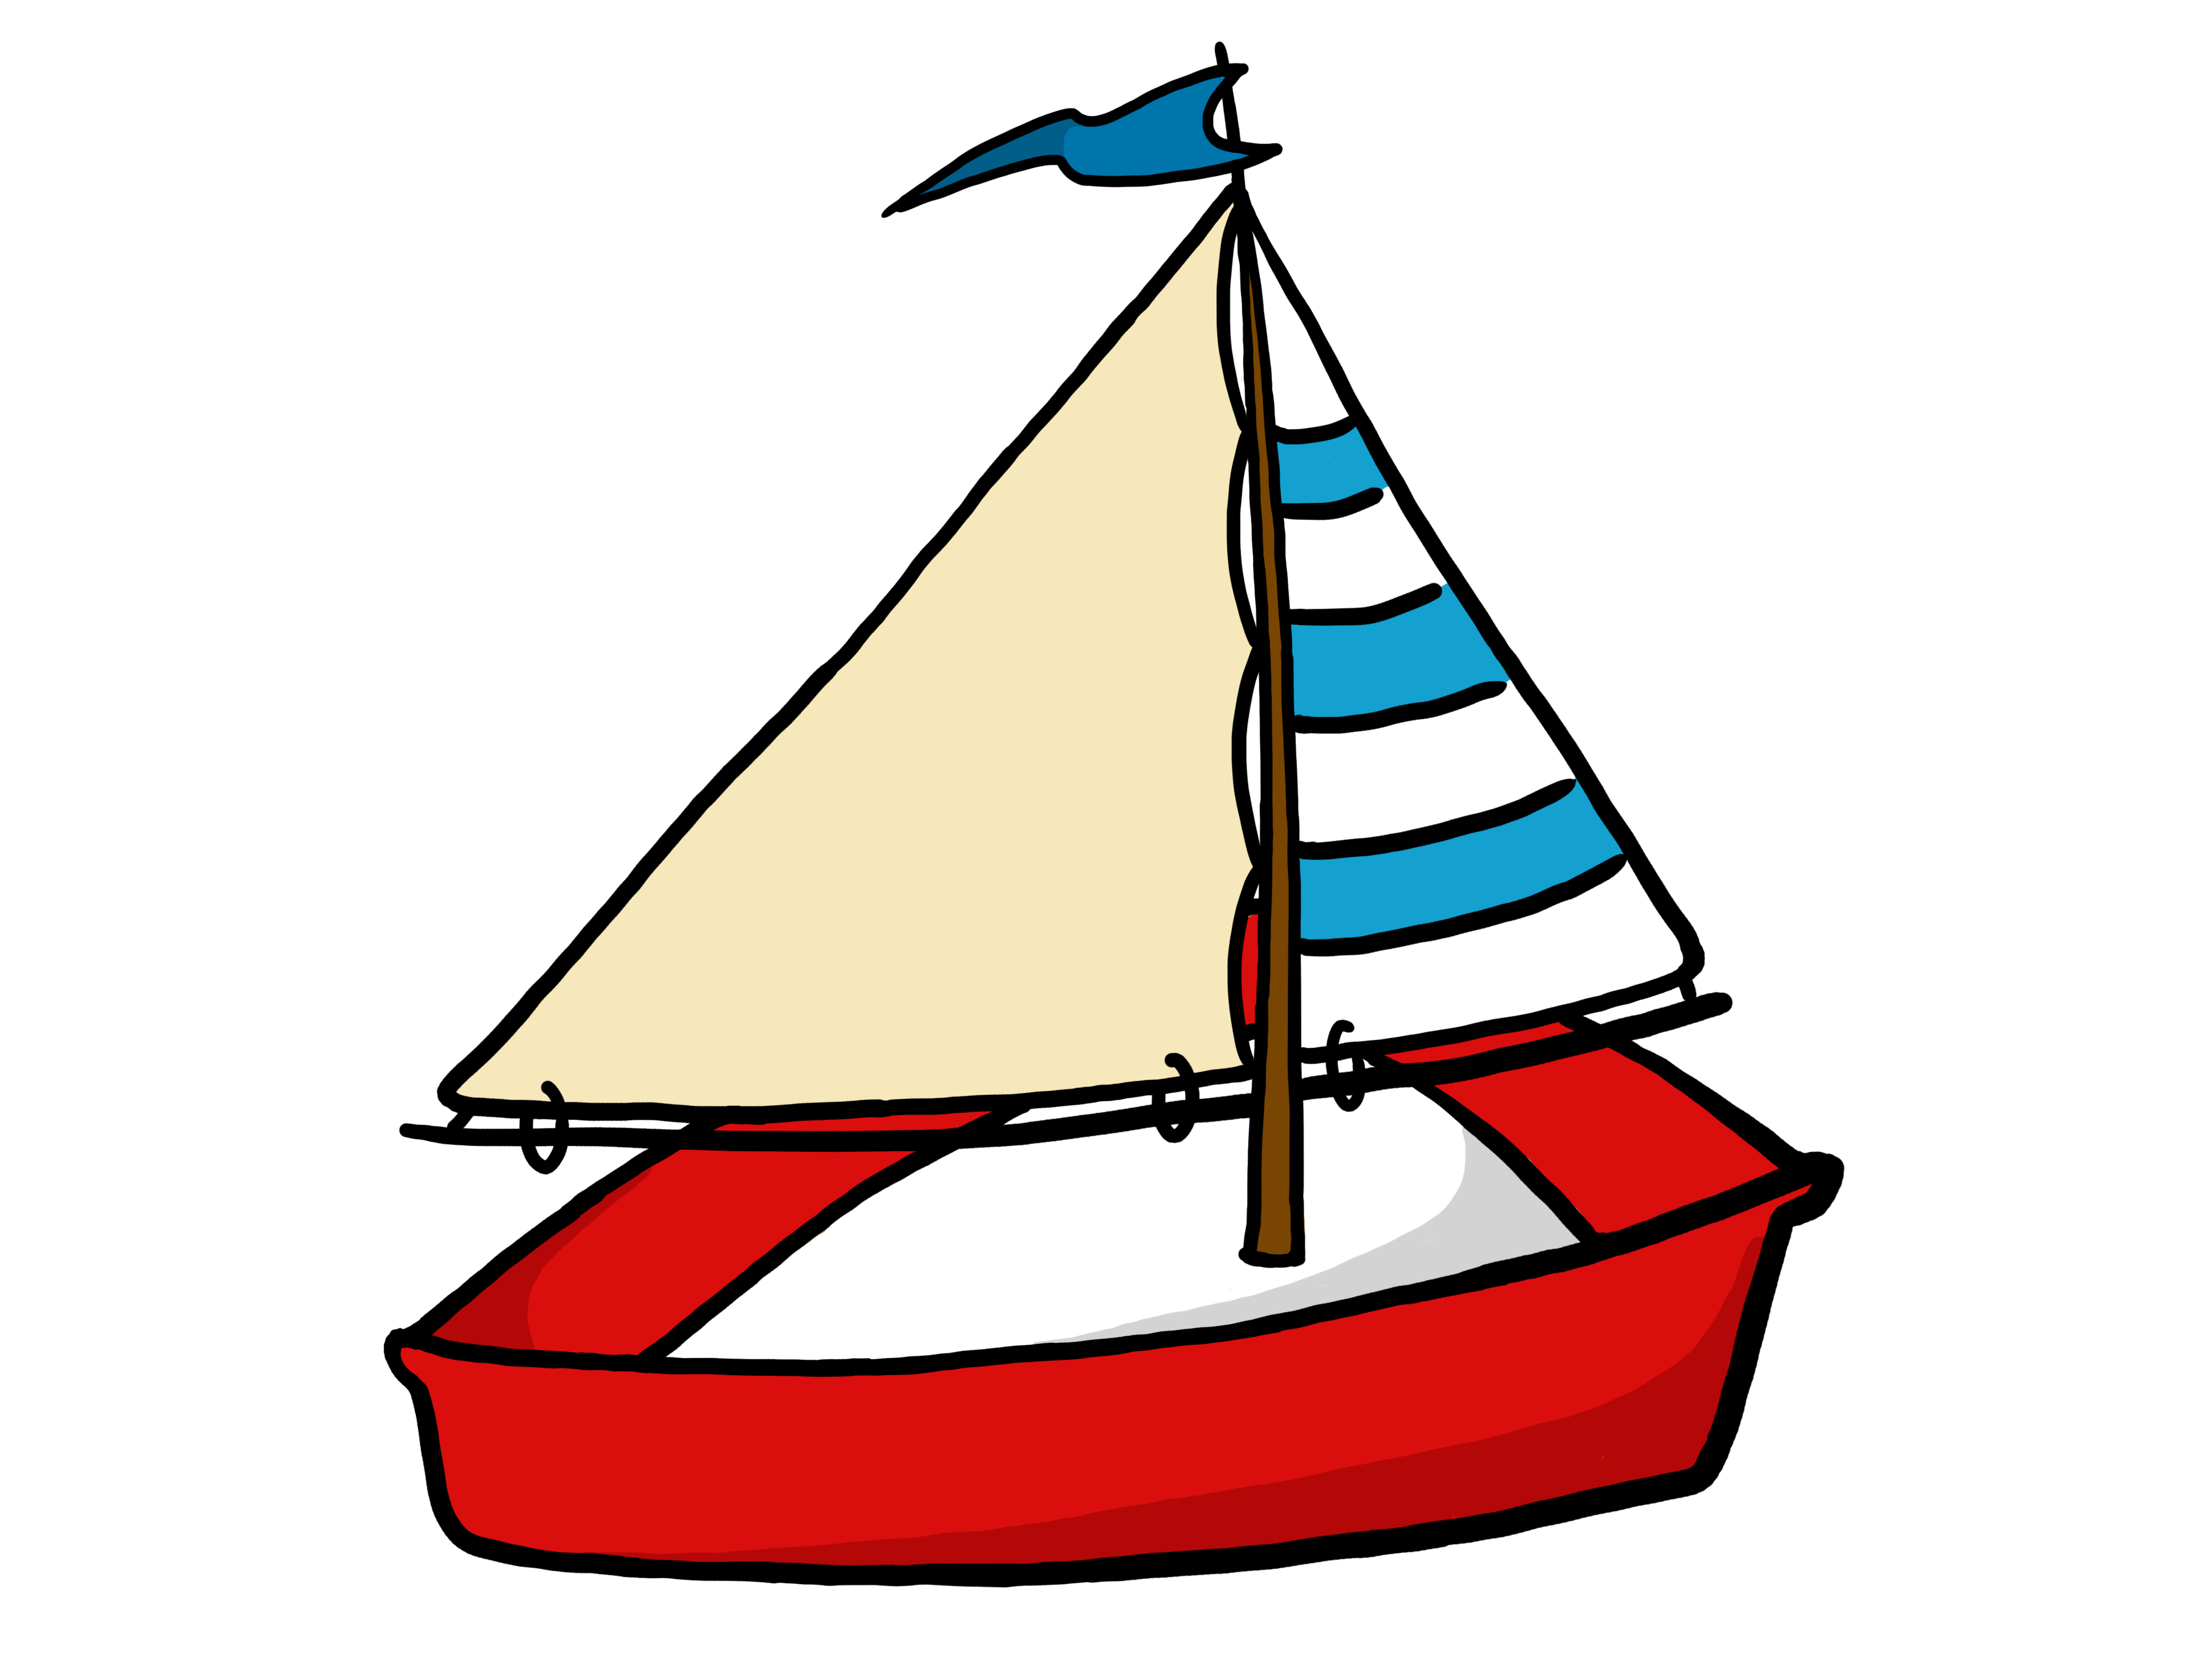 Yacht clipart pictures png transparent Boat Cartoon Clipart | Free download best Boat Cartoon Clipart on ... png transparent